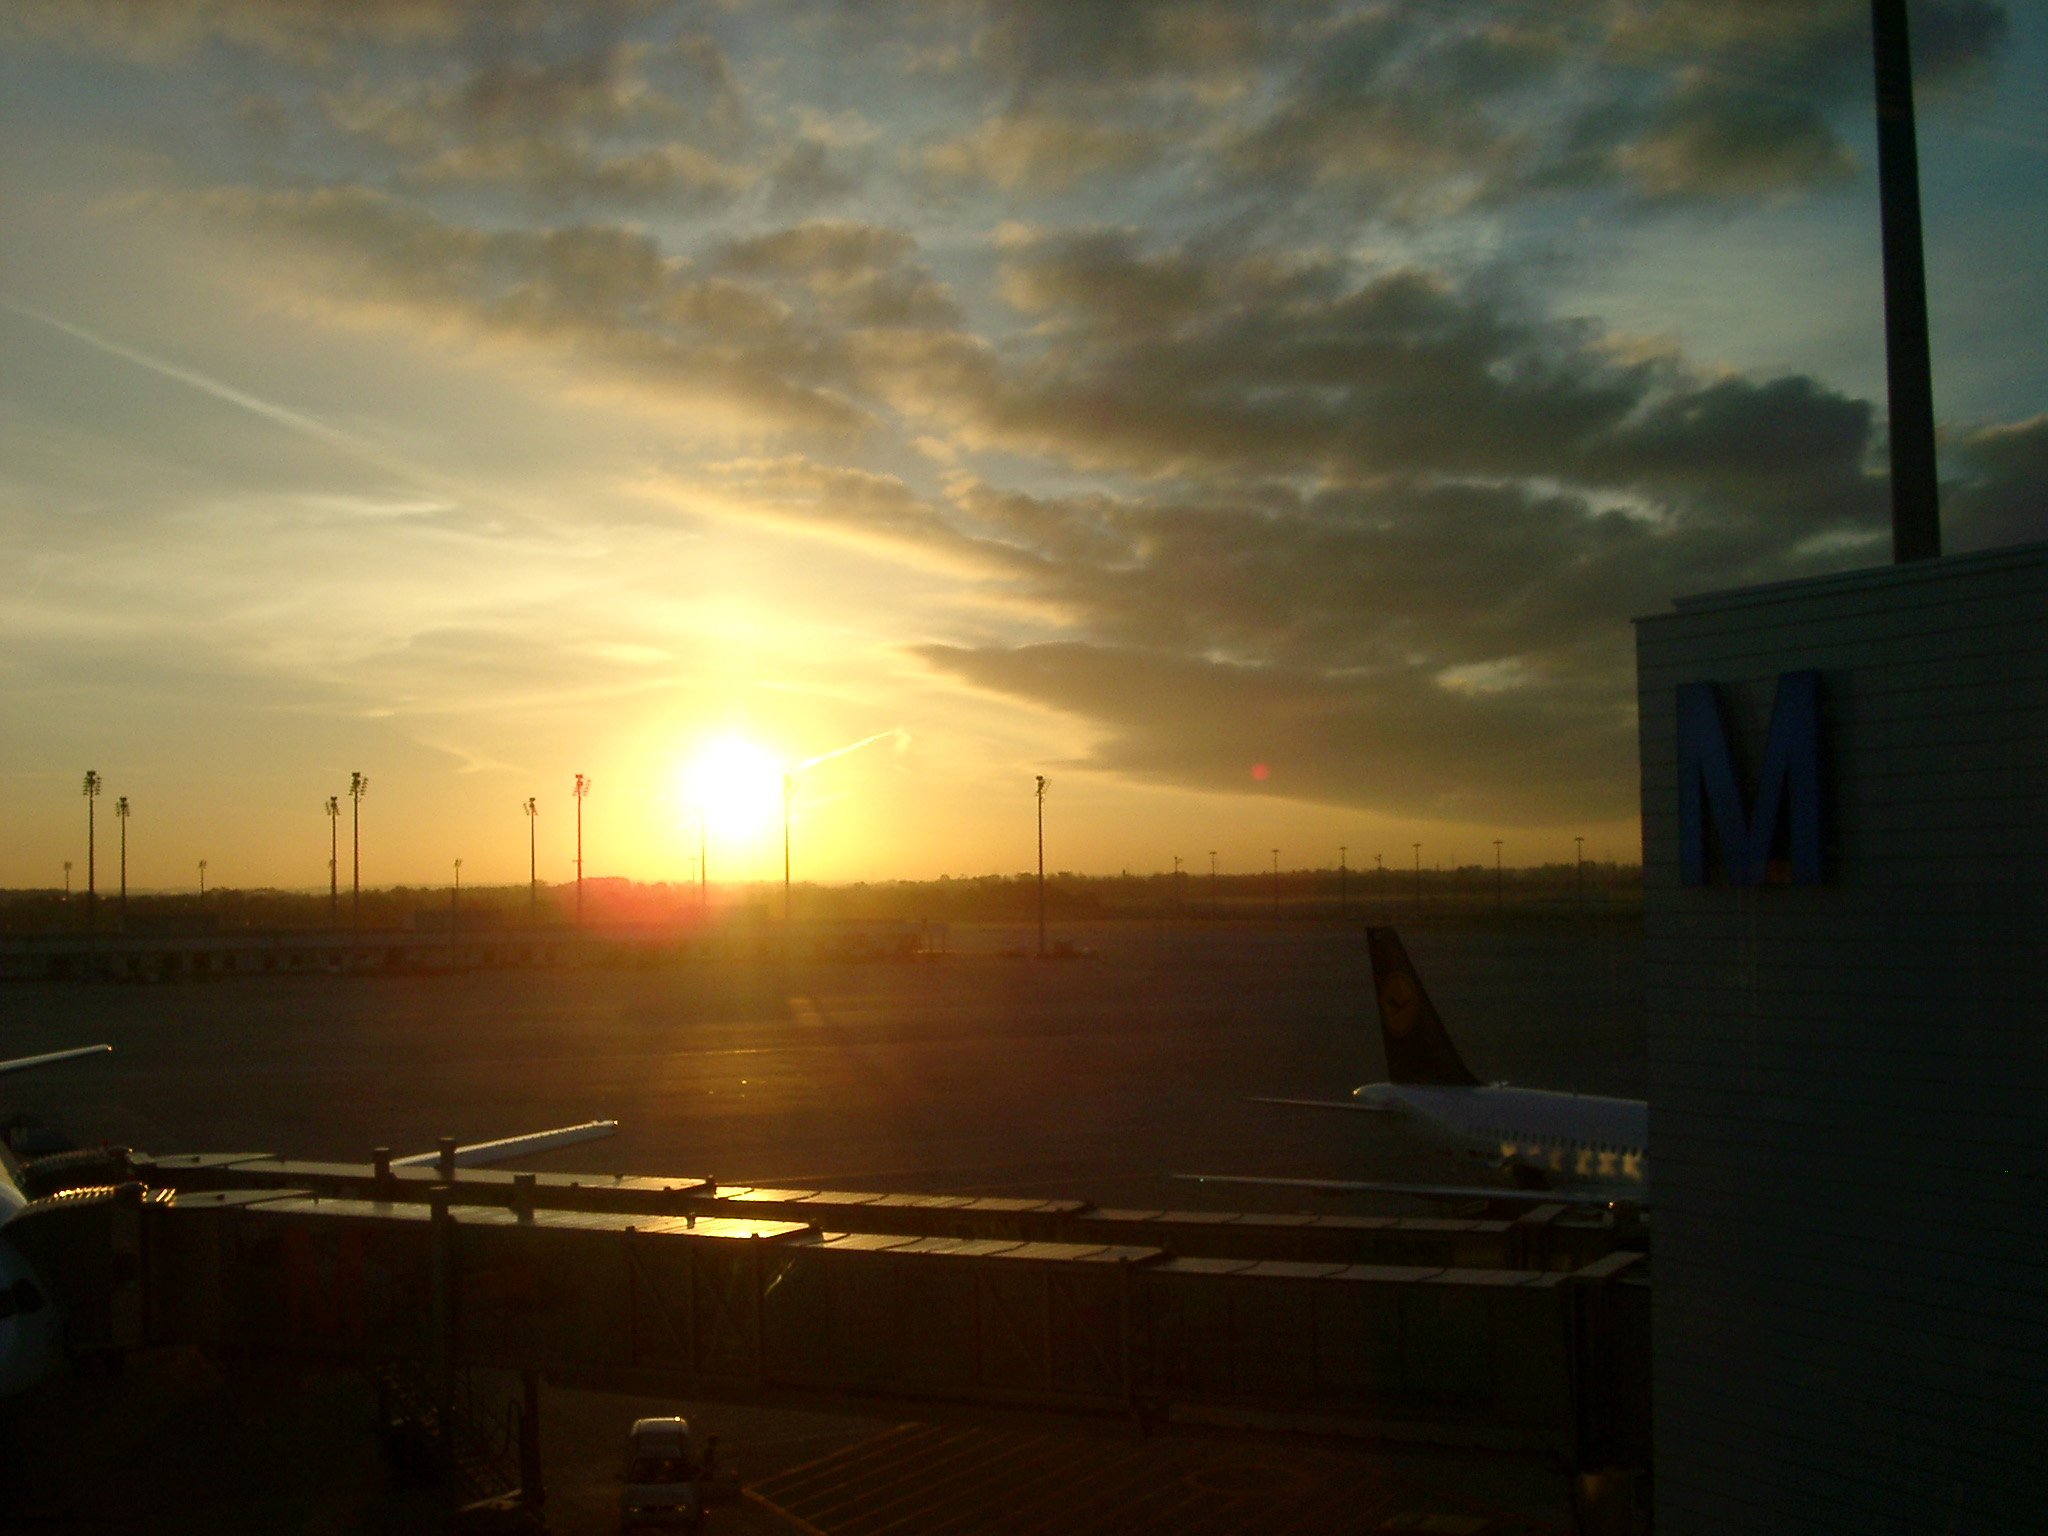 Dramatic Sunrise or Sunset over Airport Tarmac